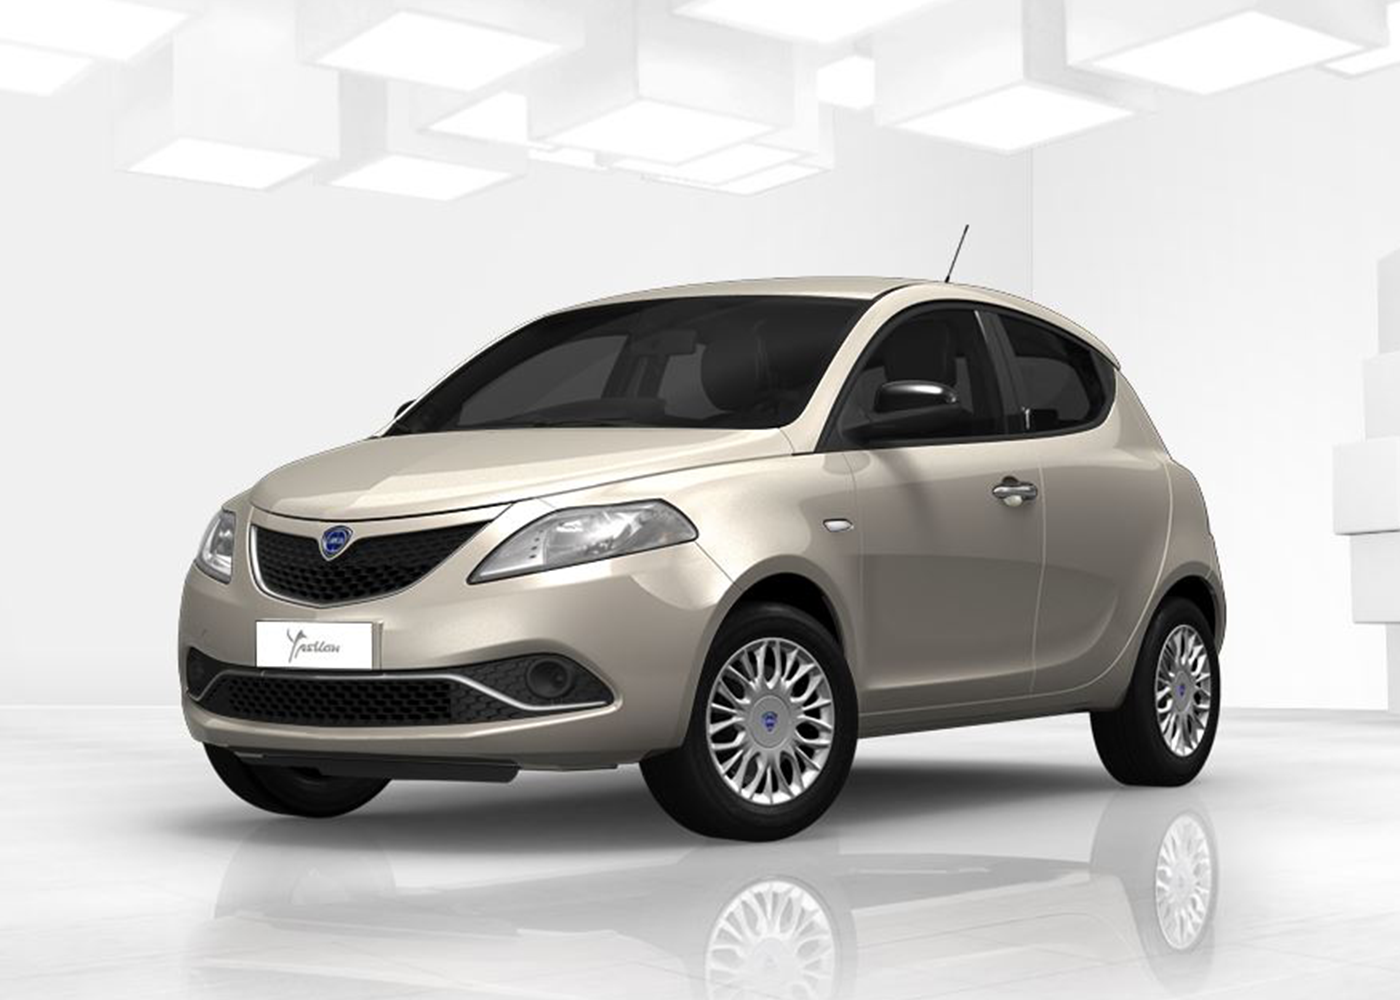 lancia ypsilon 1 3 mjt 16v 95 cv 5 porte s s silver avorio chic nuova a soli 13775 su miacar. Black Bedroom Furniture Sets. Home Design Ideas